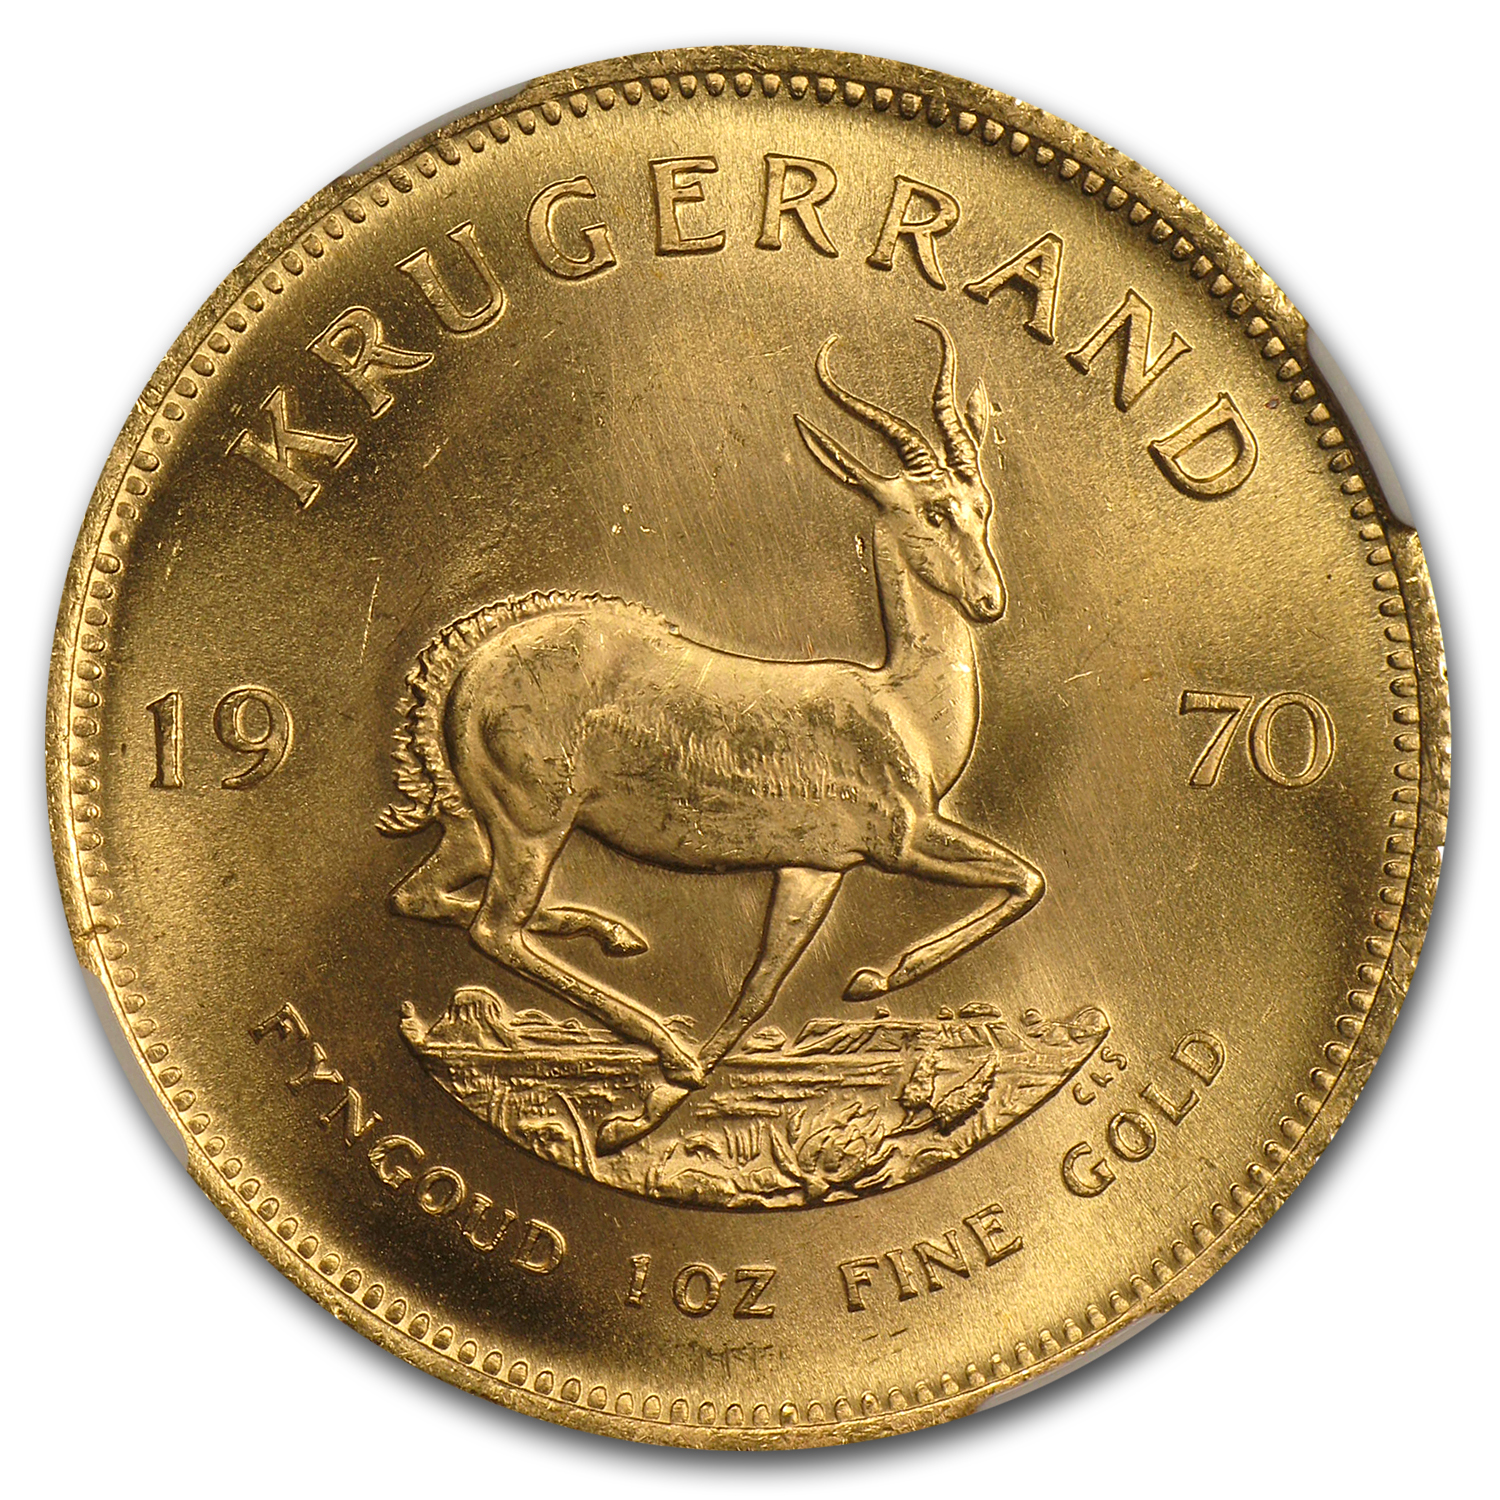 1970 1 oz Gold South African Krugerrand MS-65 NGC